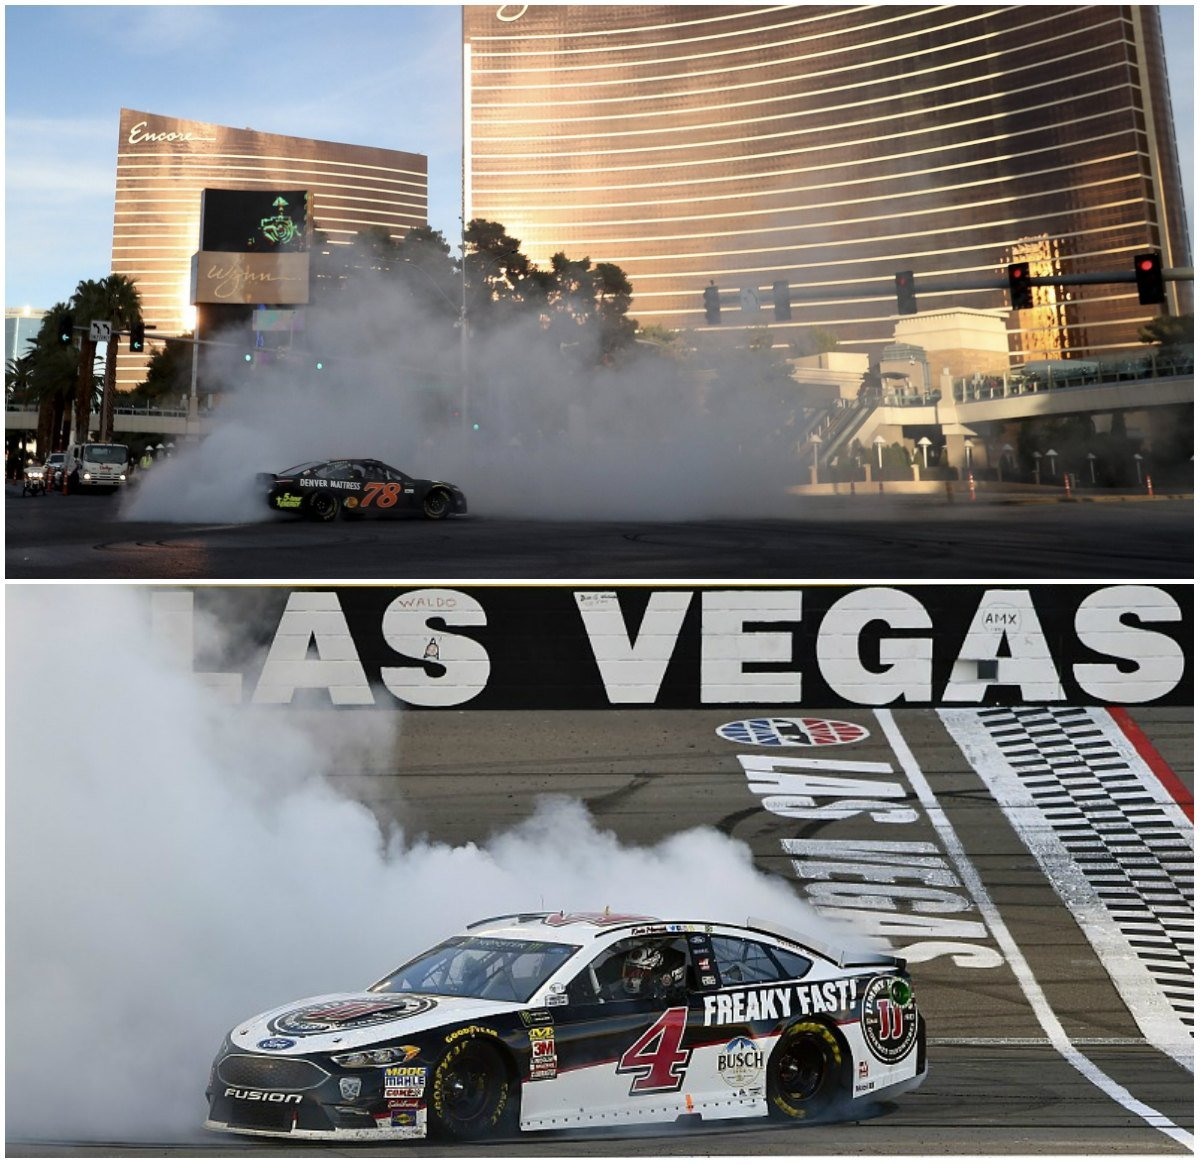 NASCAR odds sports betting Las Vegas